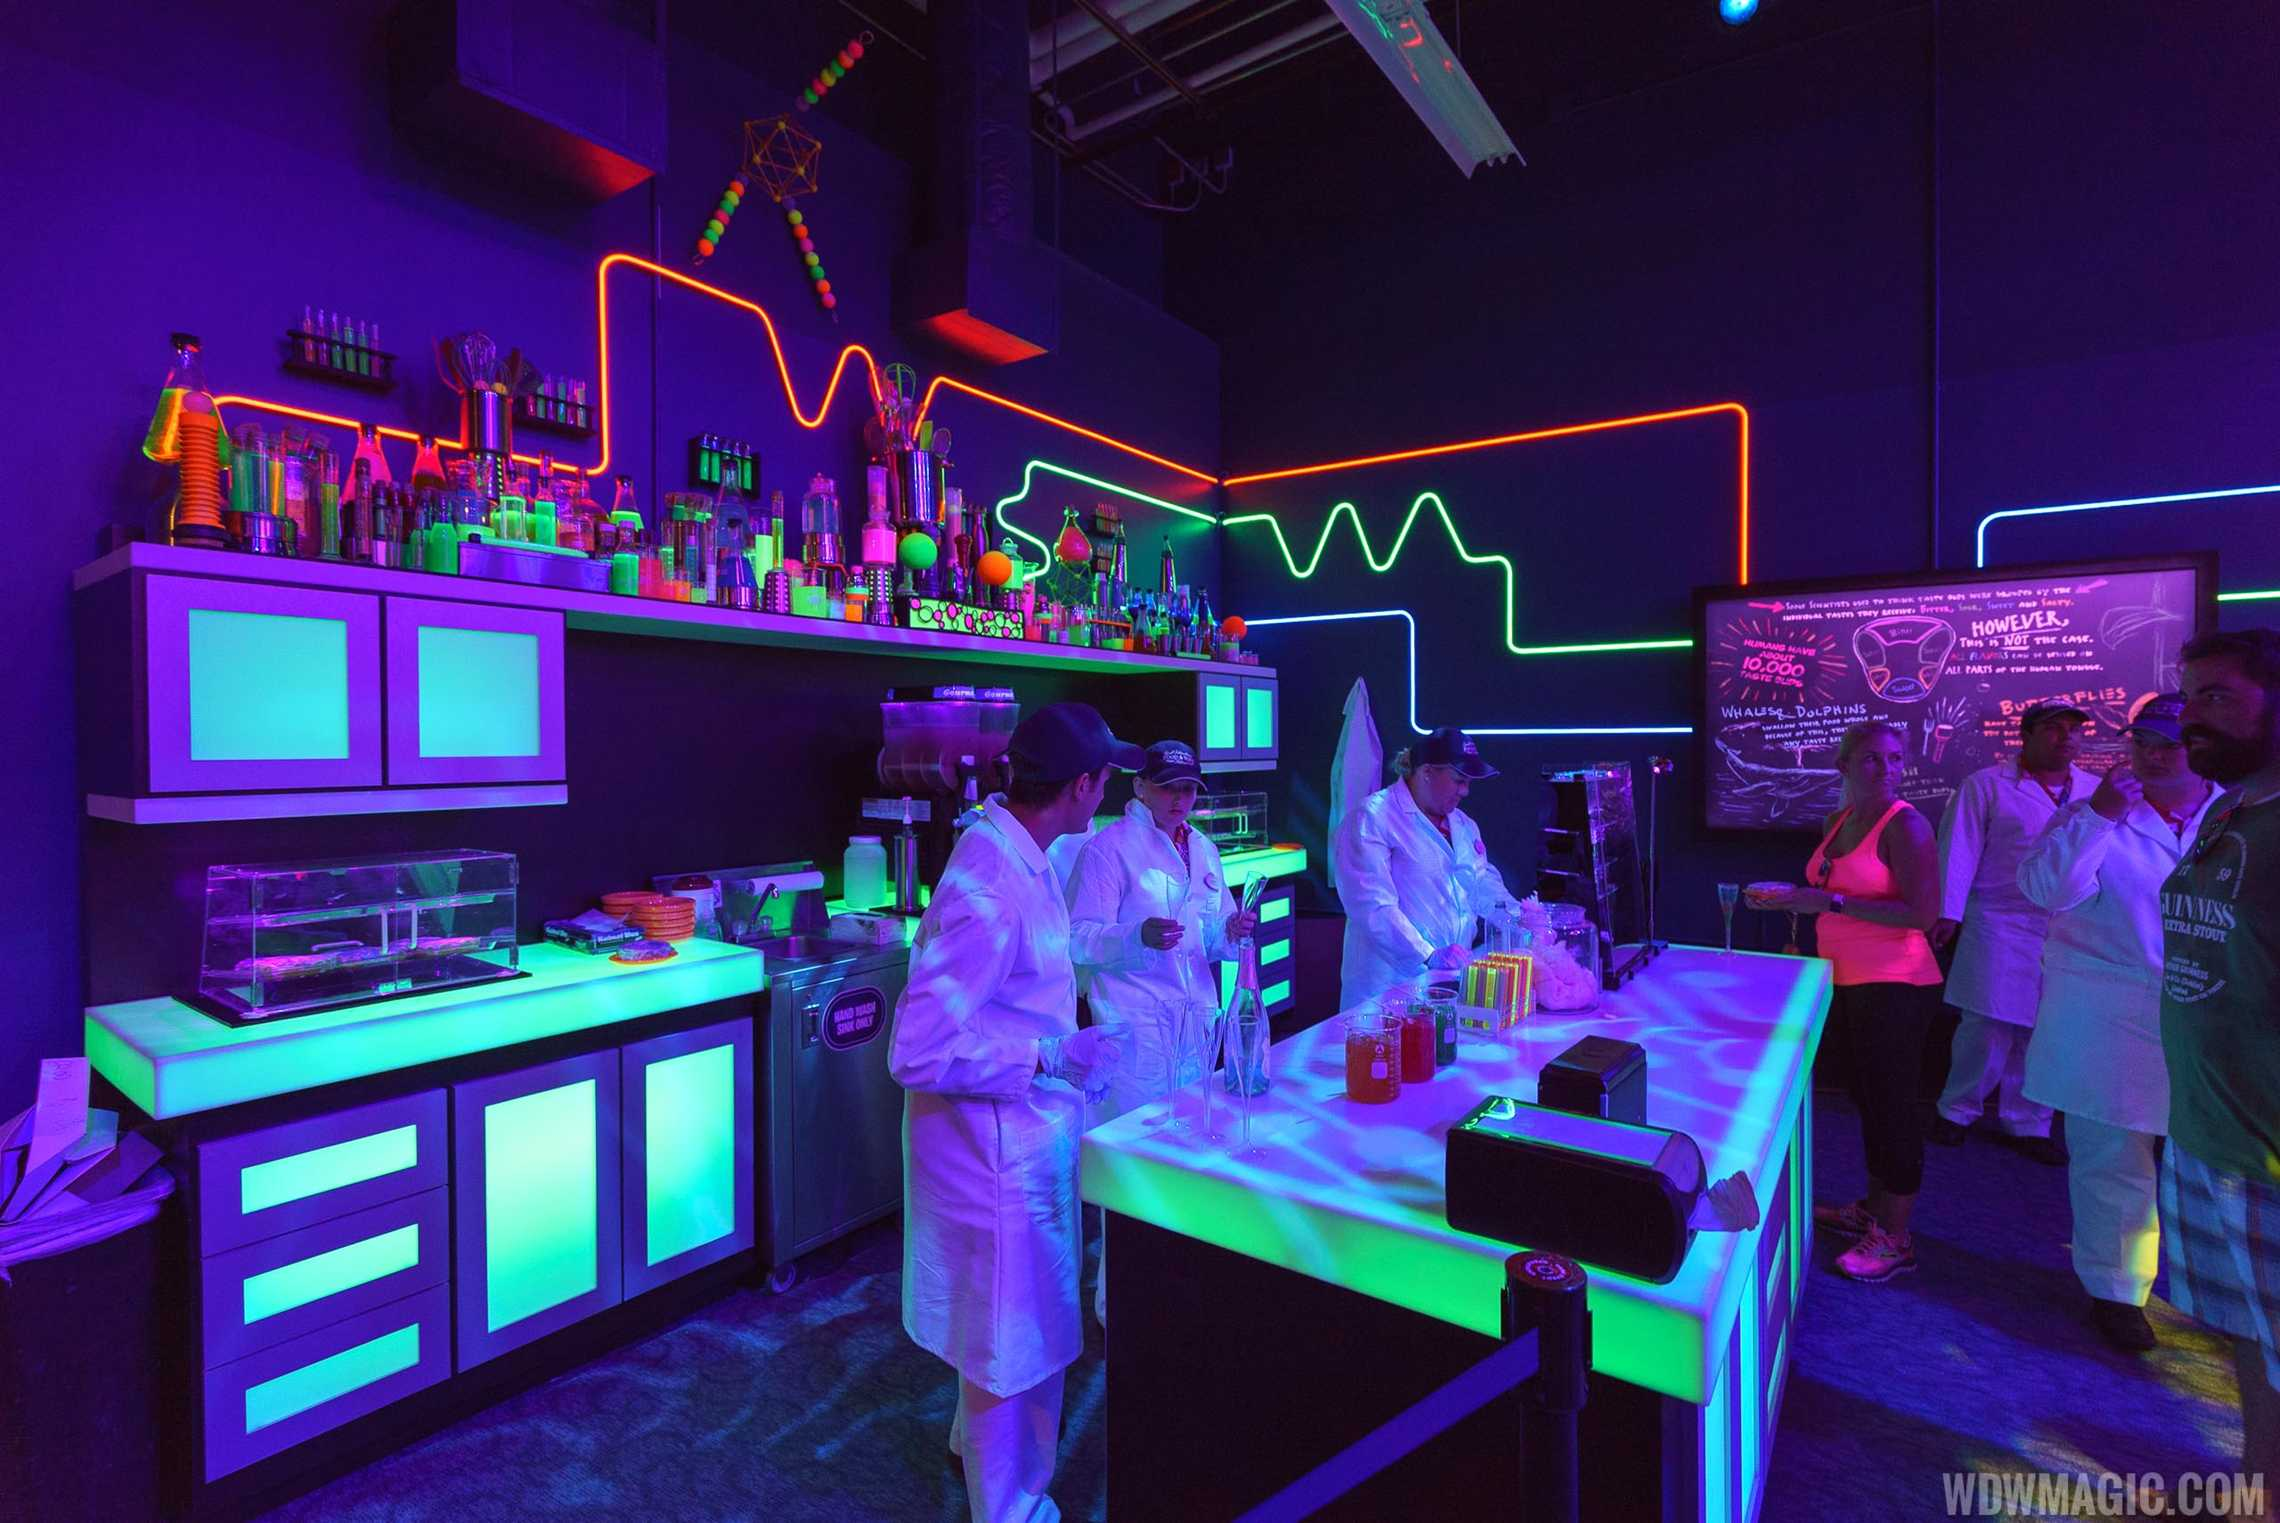 The Light Lab at Epcot's Food and Wine Festival 2017